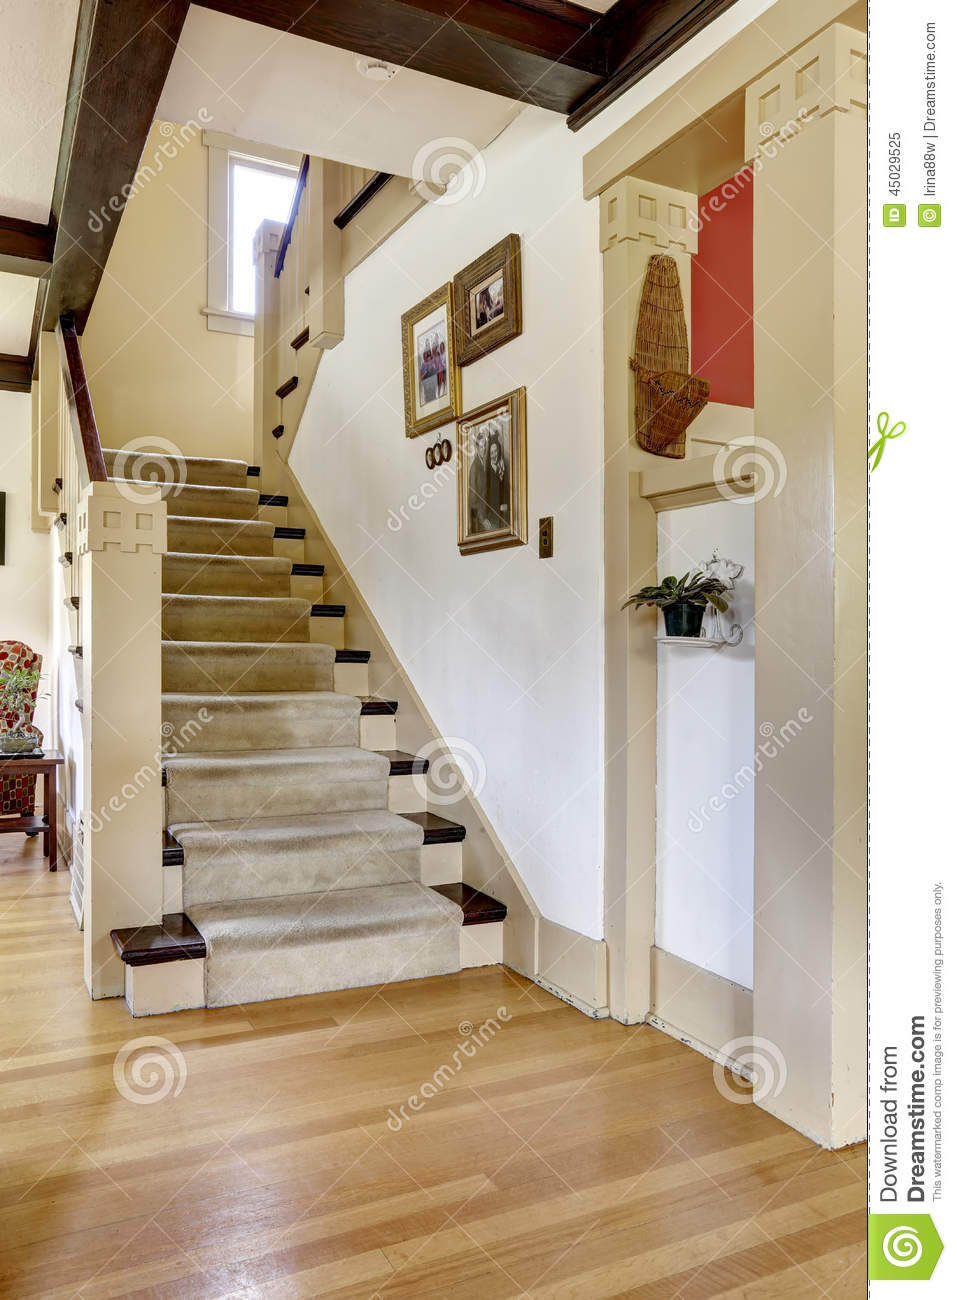 Hallway With Staircase In Old American House Stock Photo